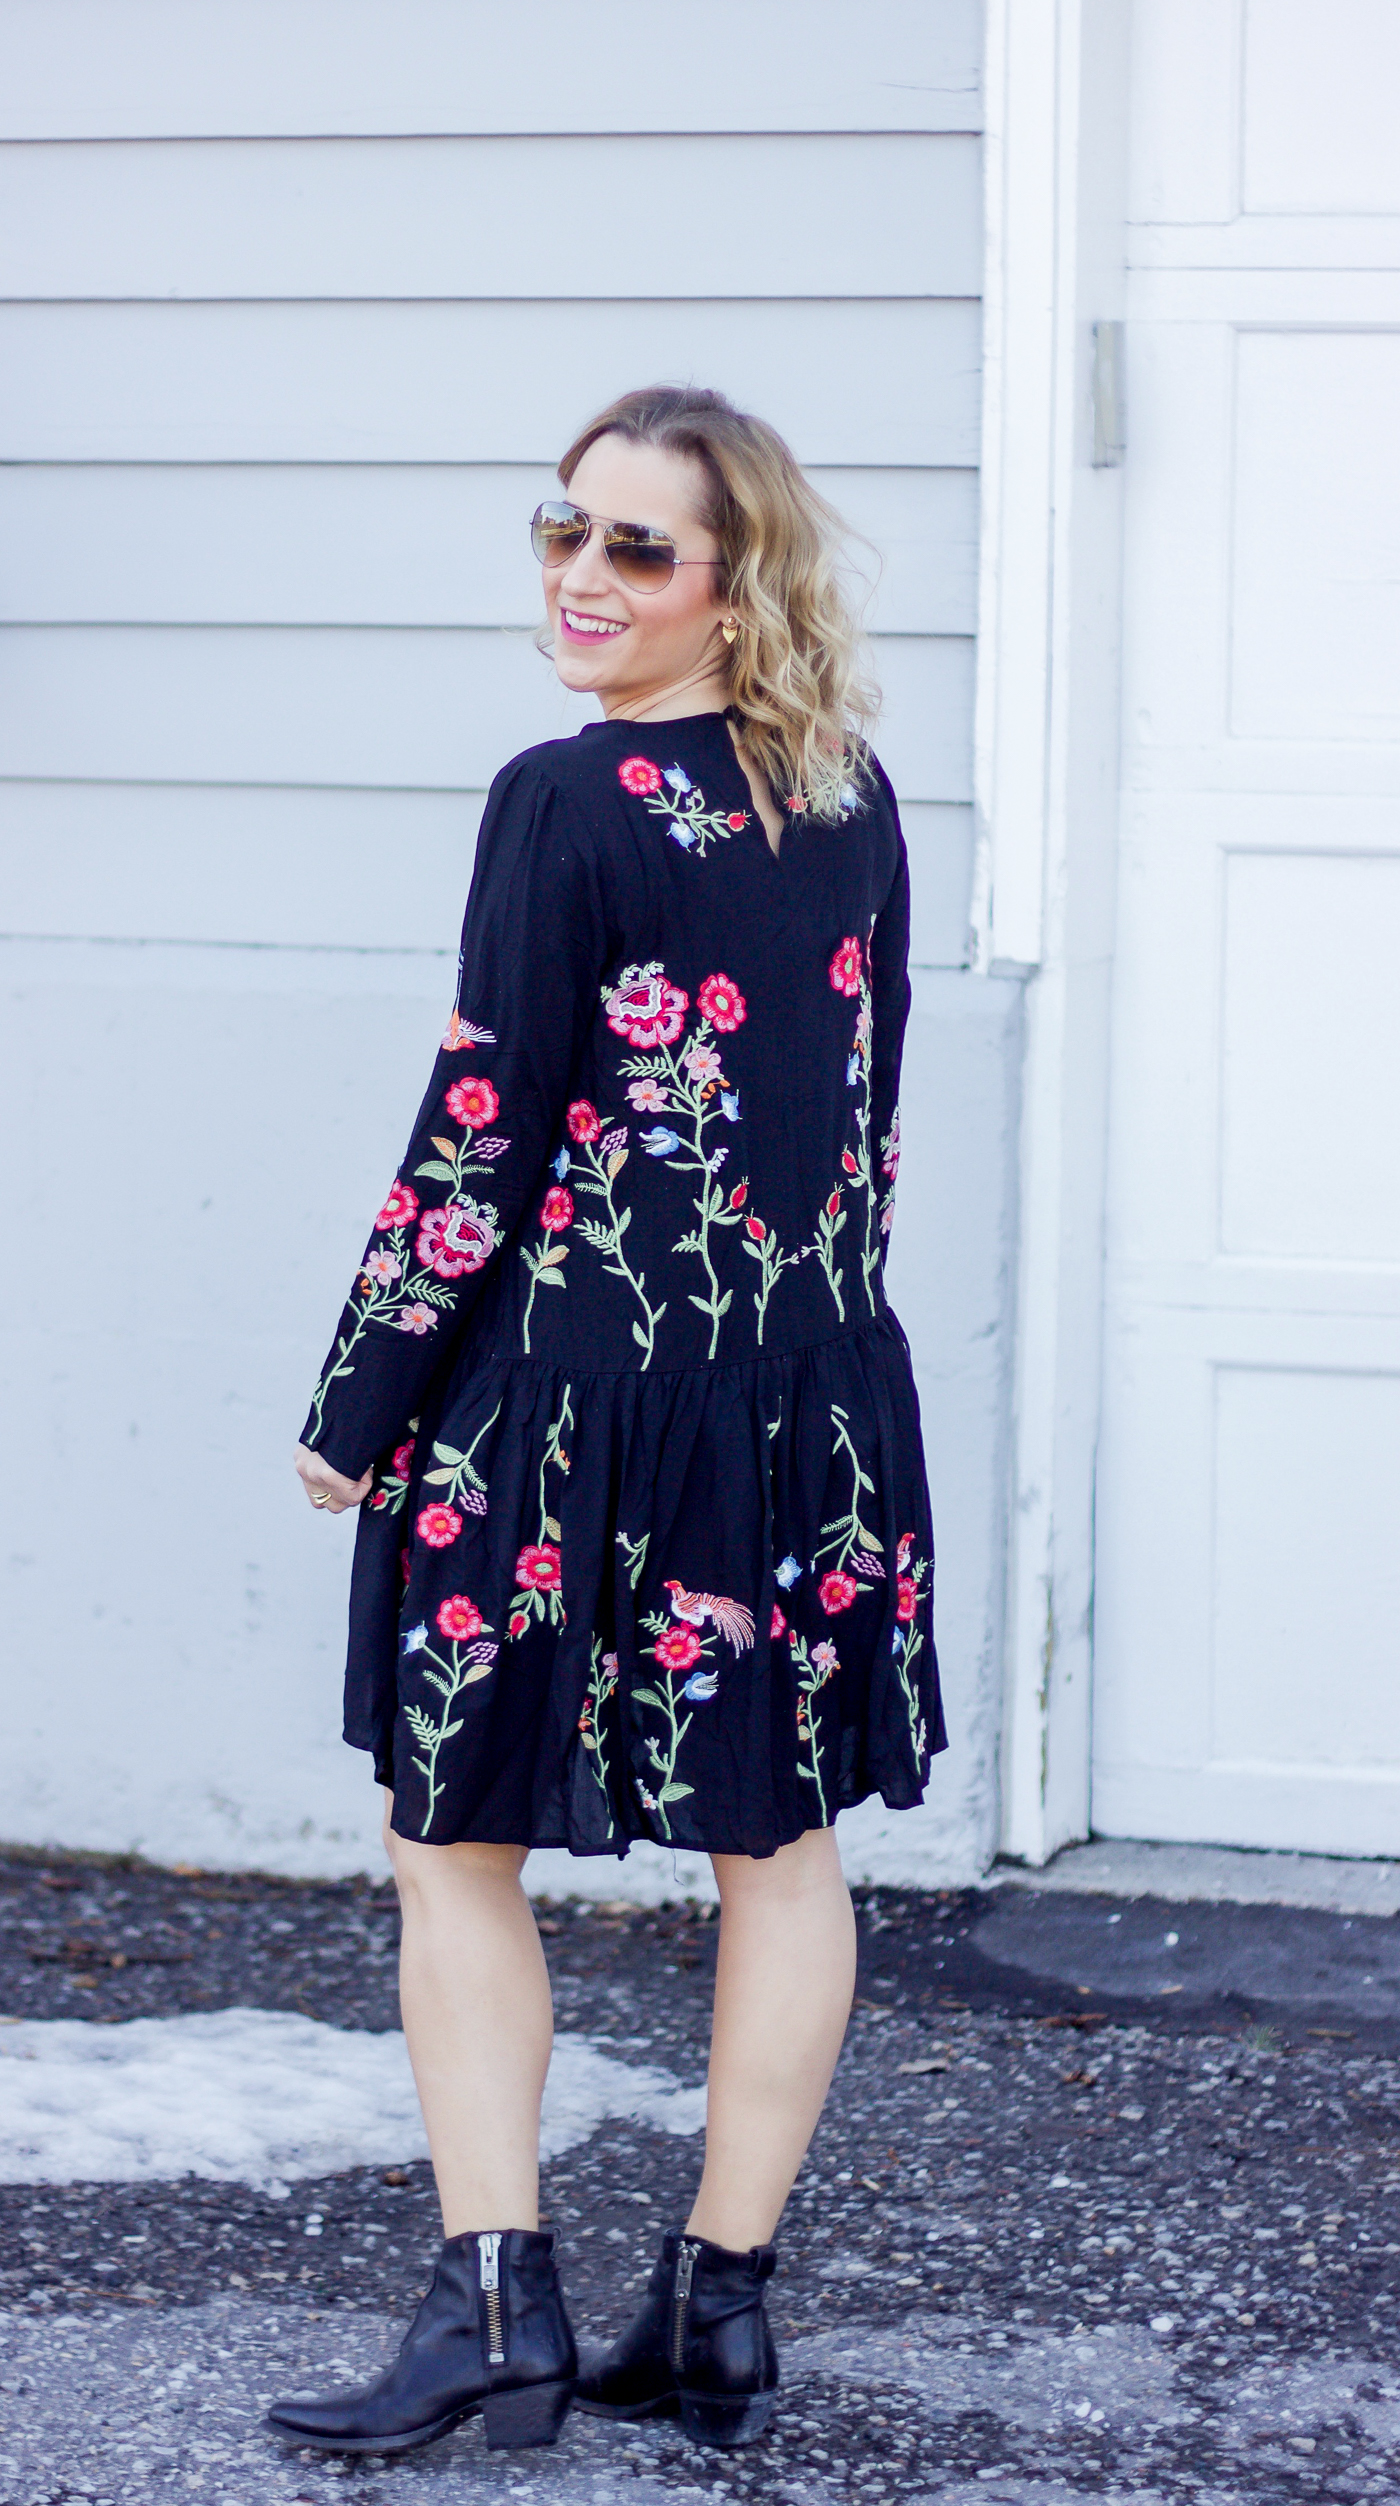 Canadian fashion and lifestyle blogger, Jackie of Something About That, is sharing a spring outfit, featuring a floral embroidered dress